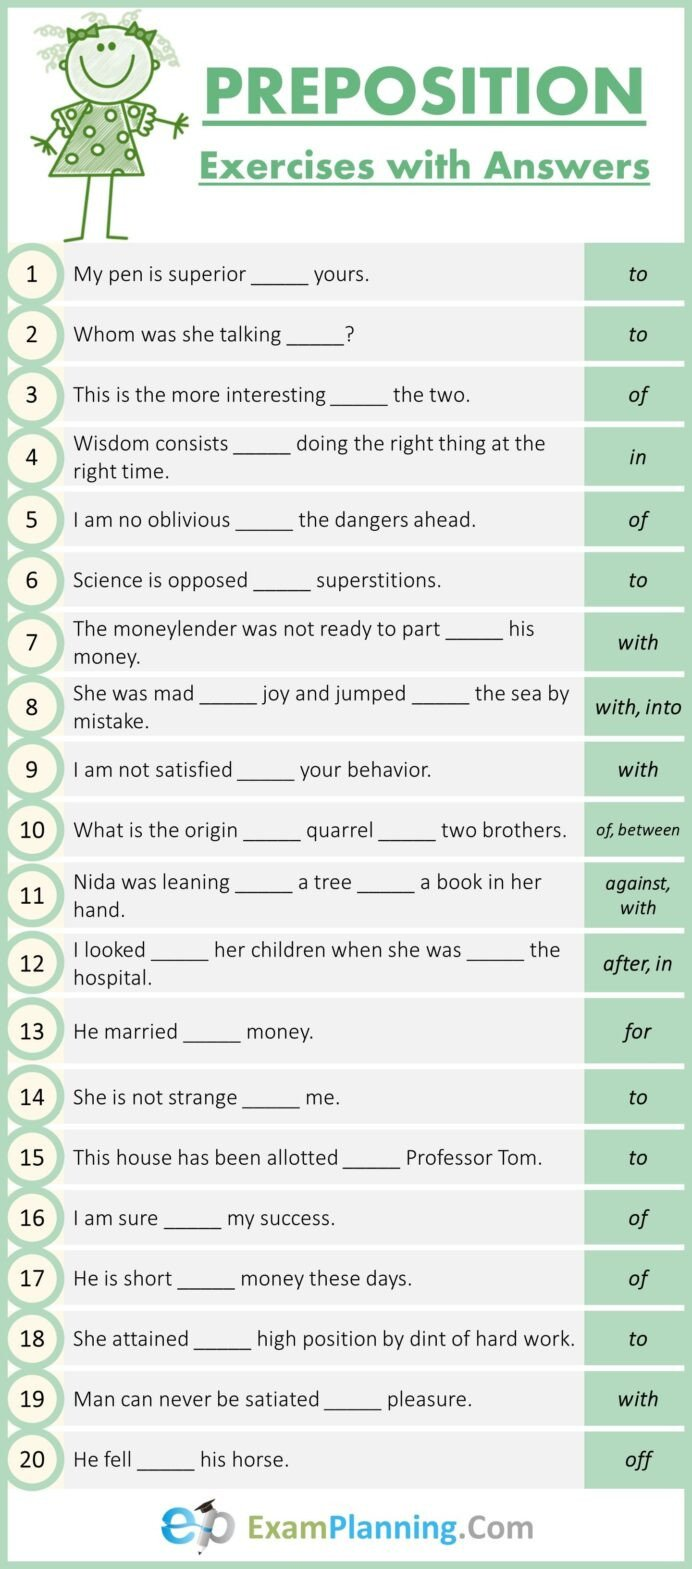 Prepositions Worksheets Middle School Prepositions Worksheet Preposition Worksheets English